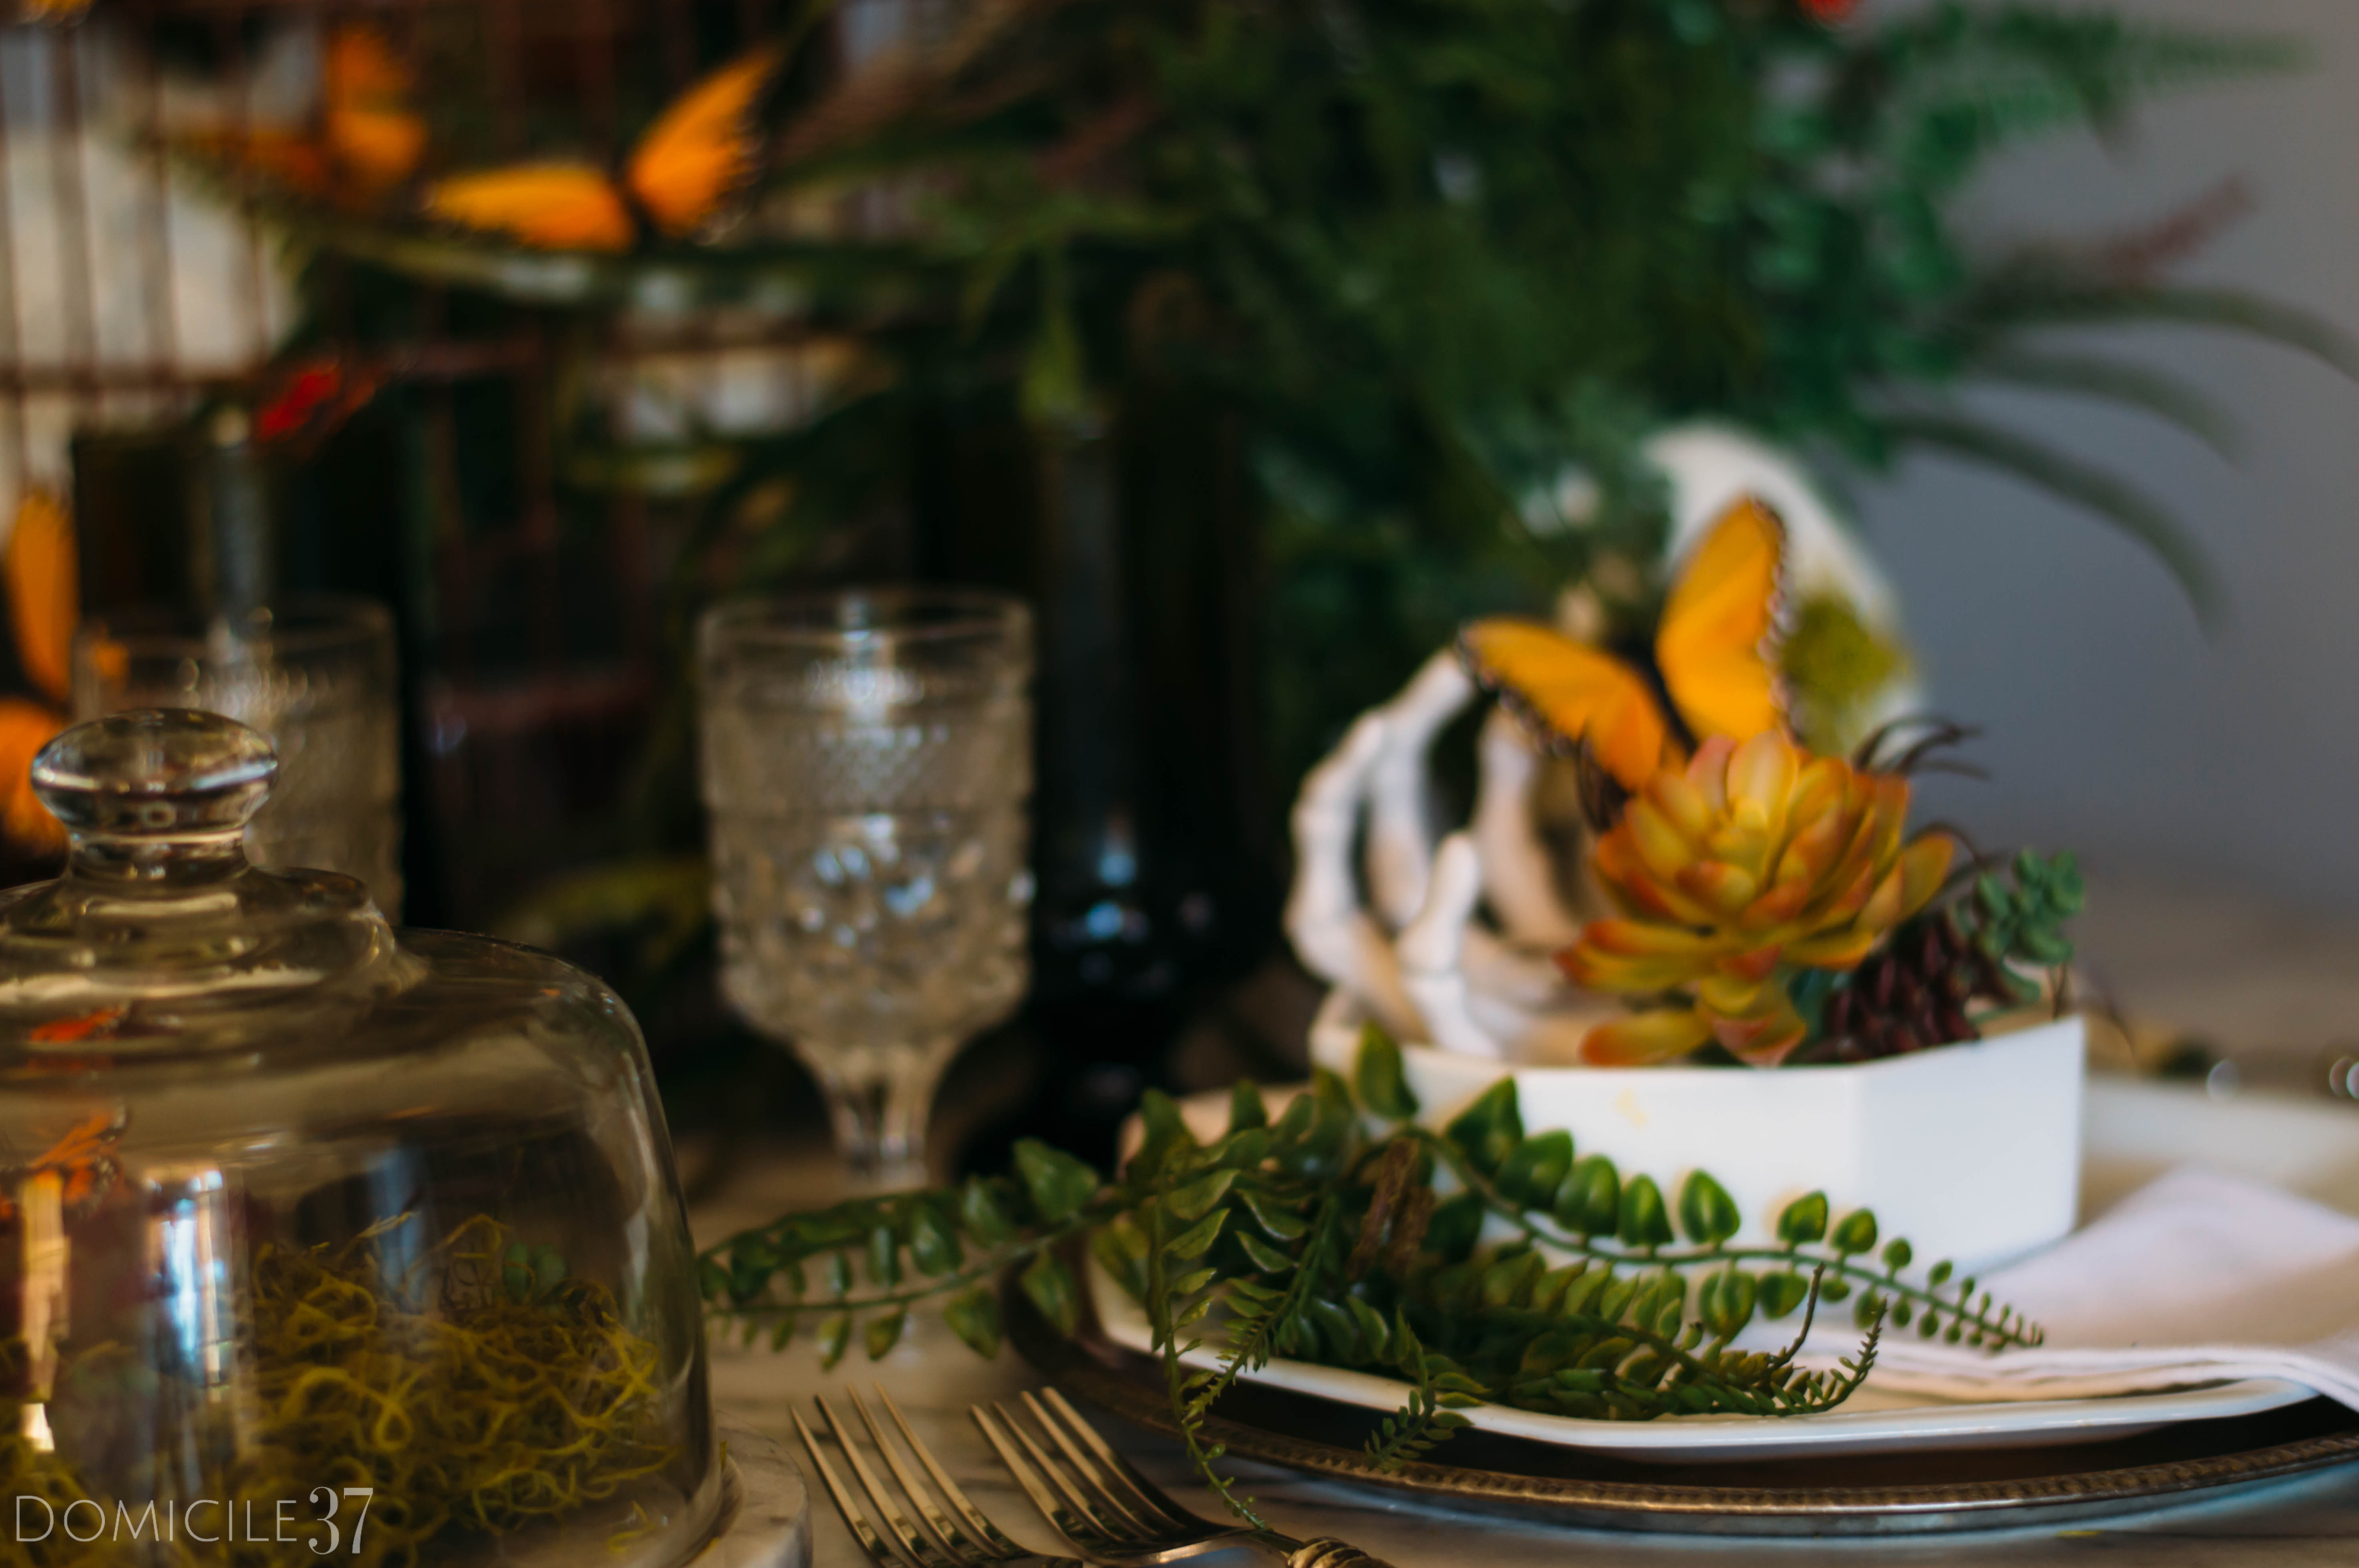 Spooky Creepy Halloween Tablescape | Decorating with Butterflies | Skeleton and skull decor | skulls and butterflies | Tablescape greenery | faux florals